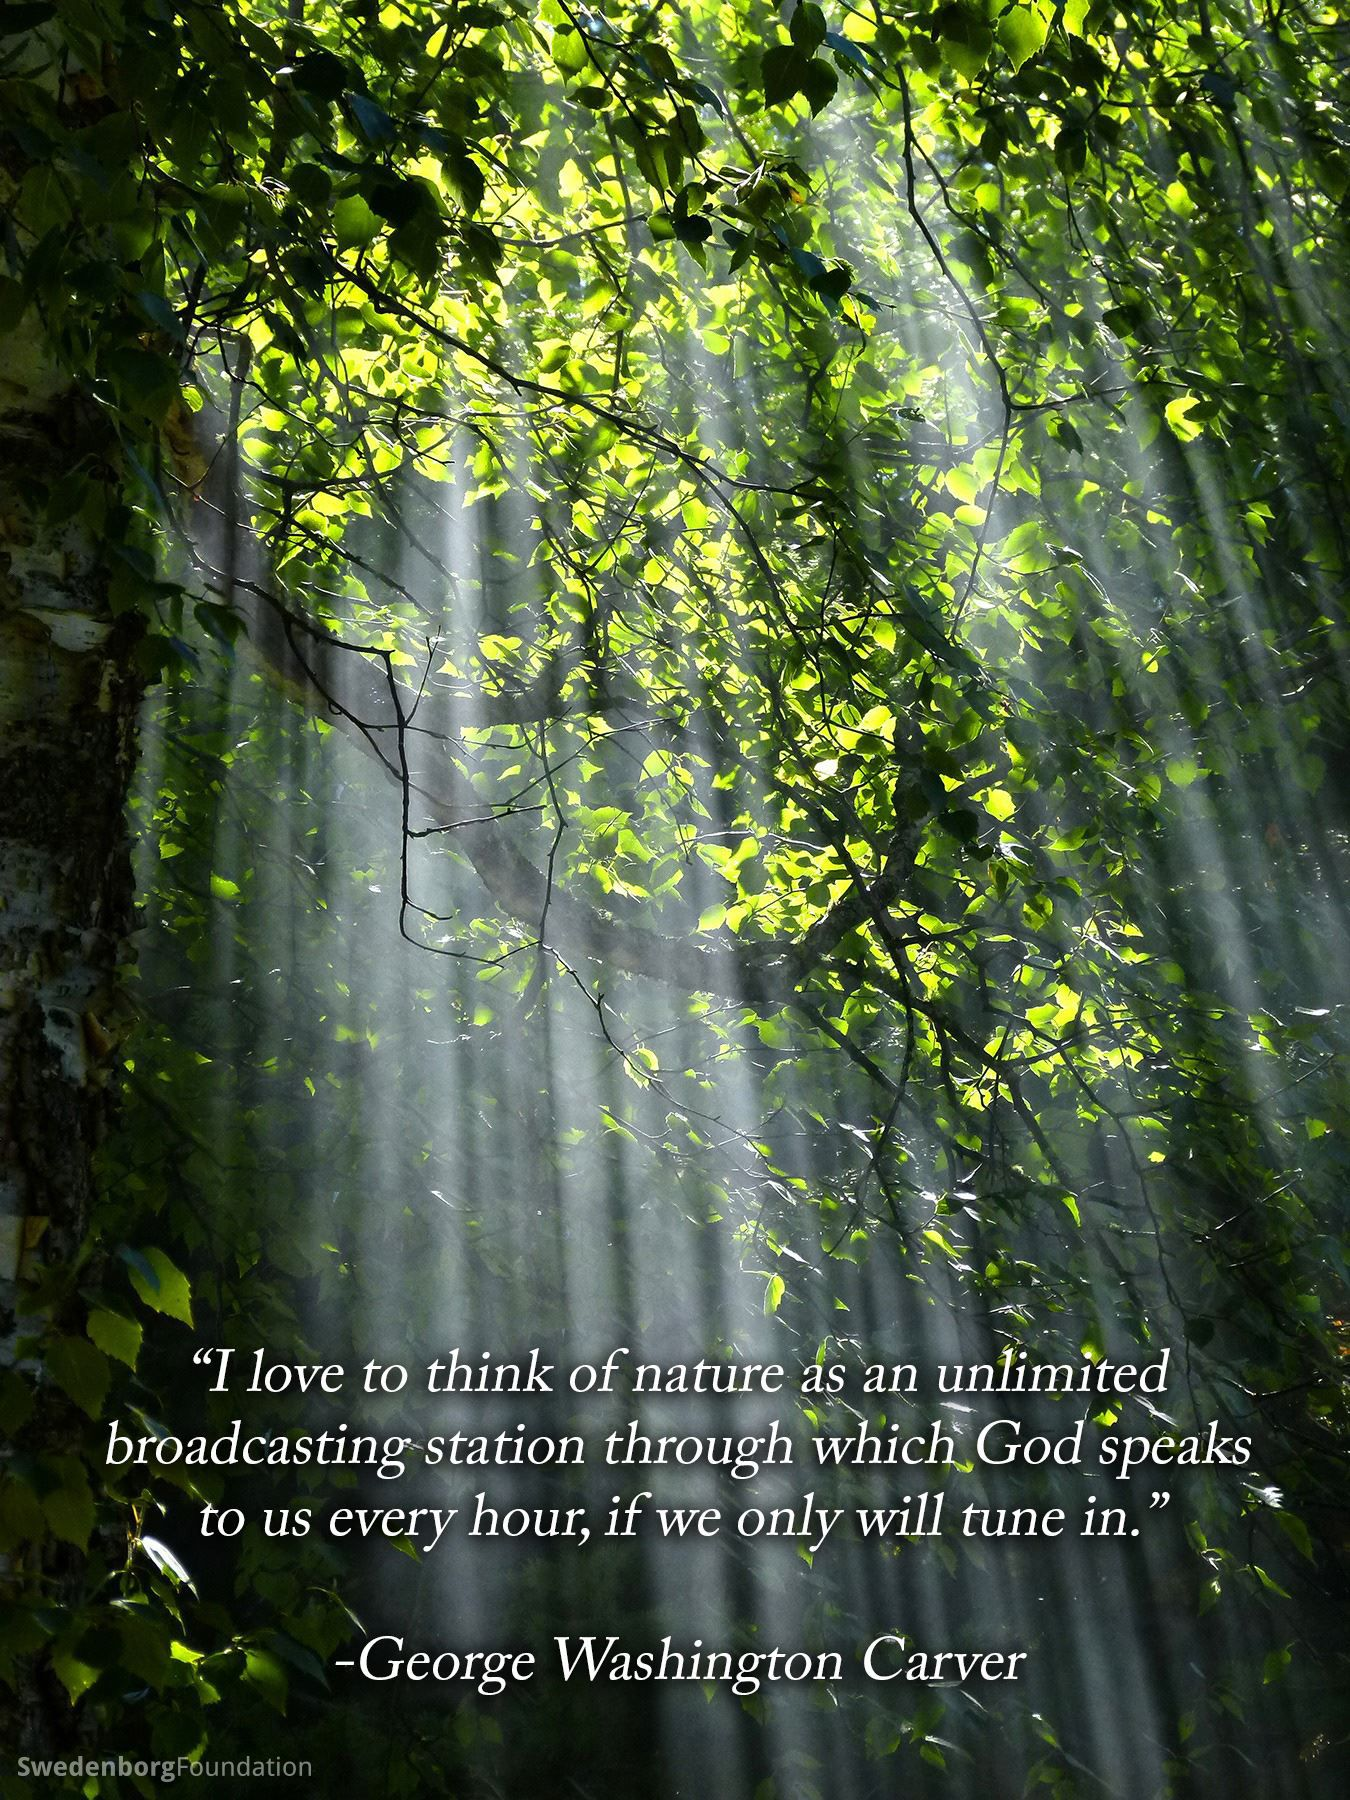 george washington carver quotes quote addicts teach me ldquoi love to think of nature as an unlimited broadcasting station through which god speaks